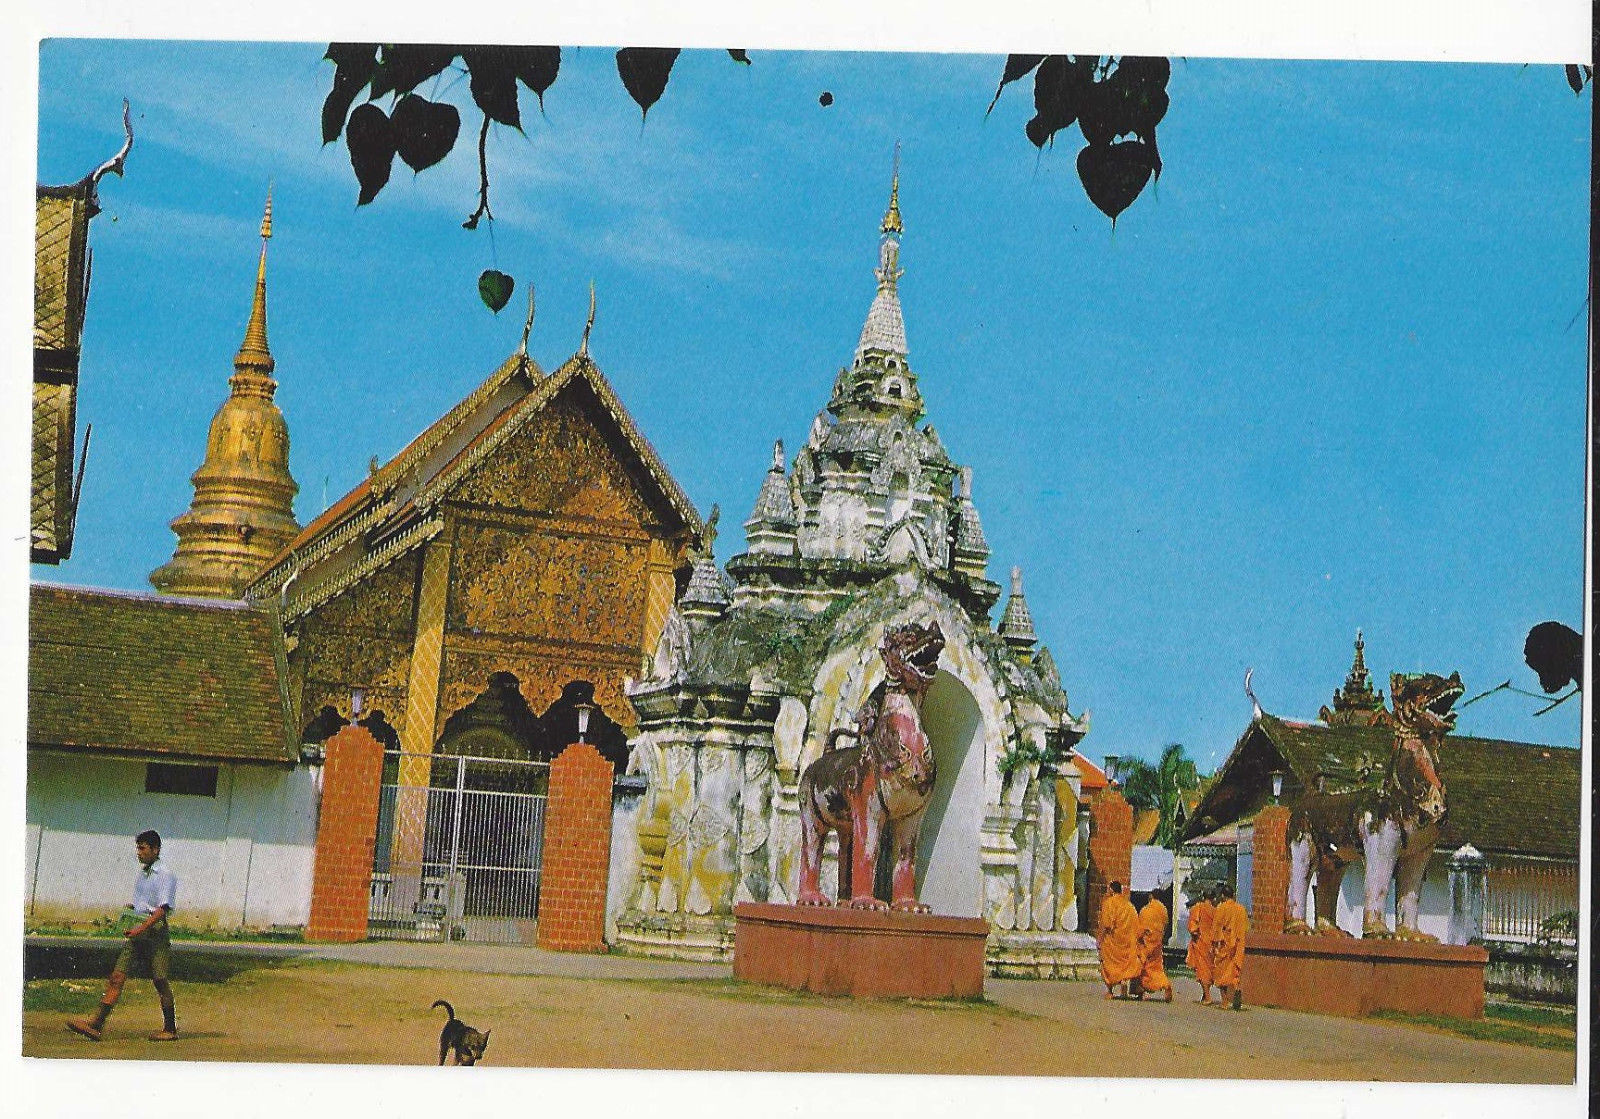 Thailand Buddhist Temple Wat Phra That Hariphunchai Front View Vtg Postcard